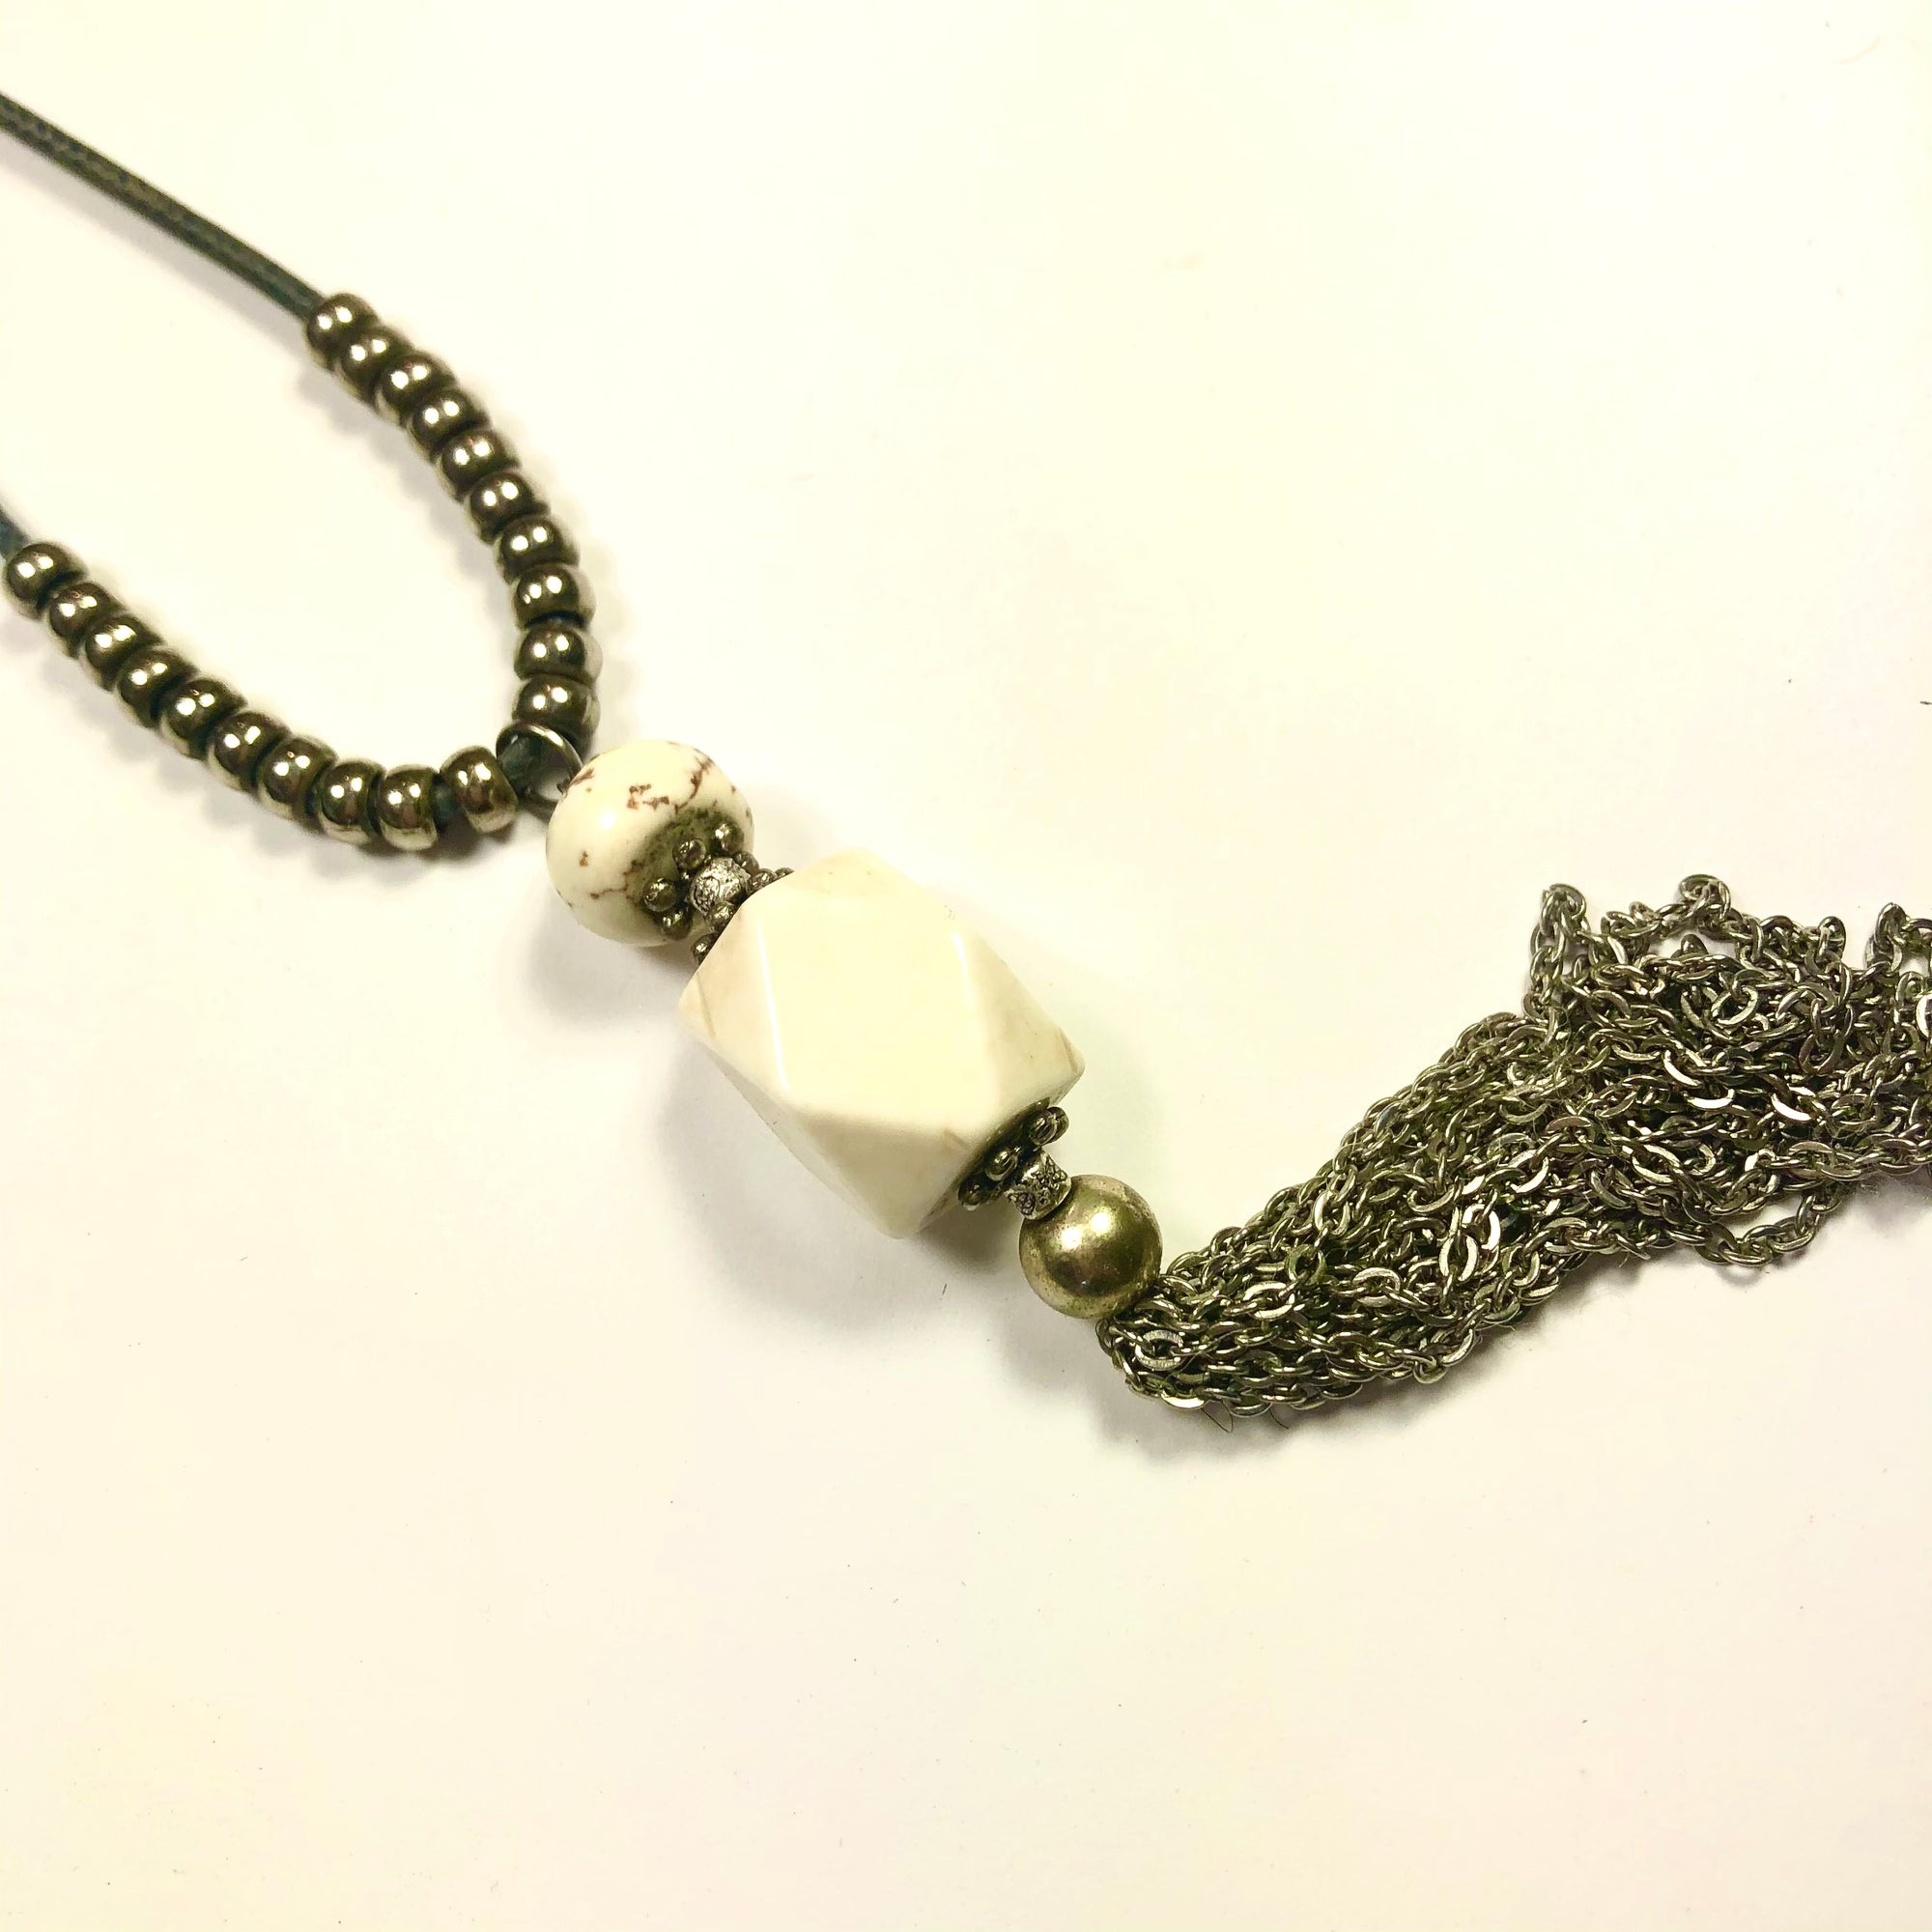 NEW! The Tassel  Necklace